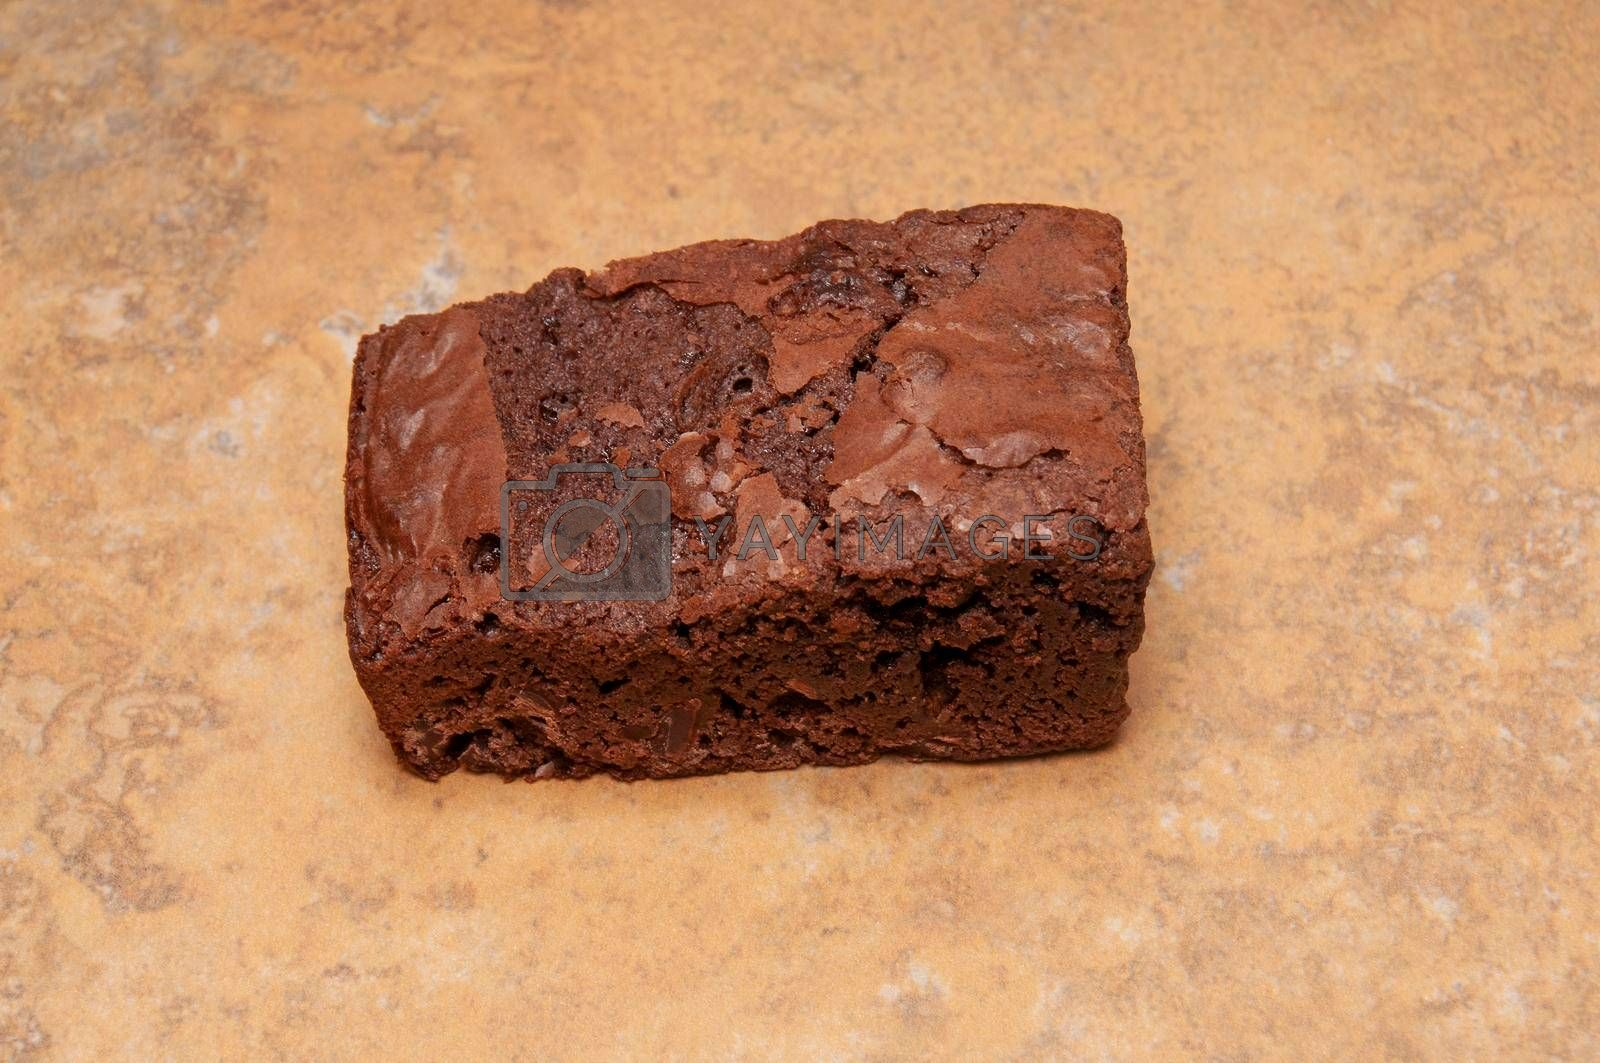 Delicious bakery product known as the chocolate brownie